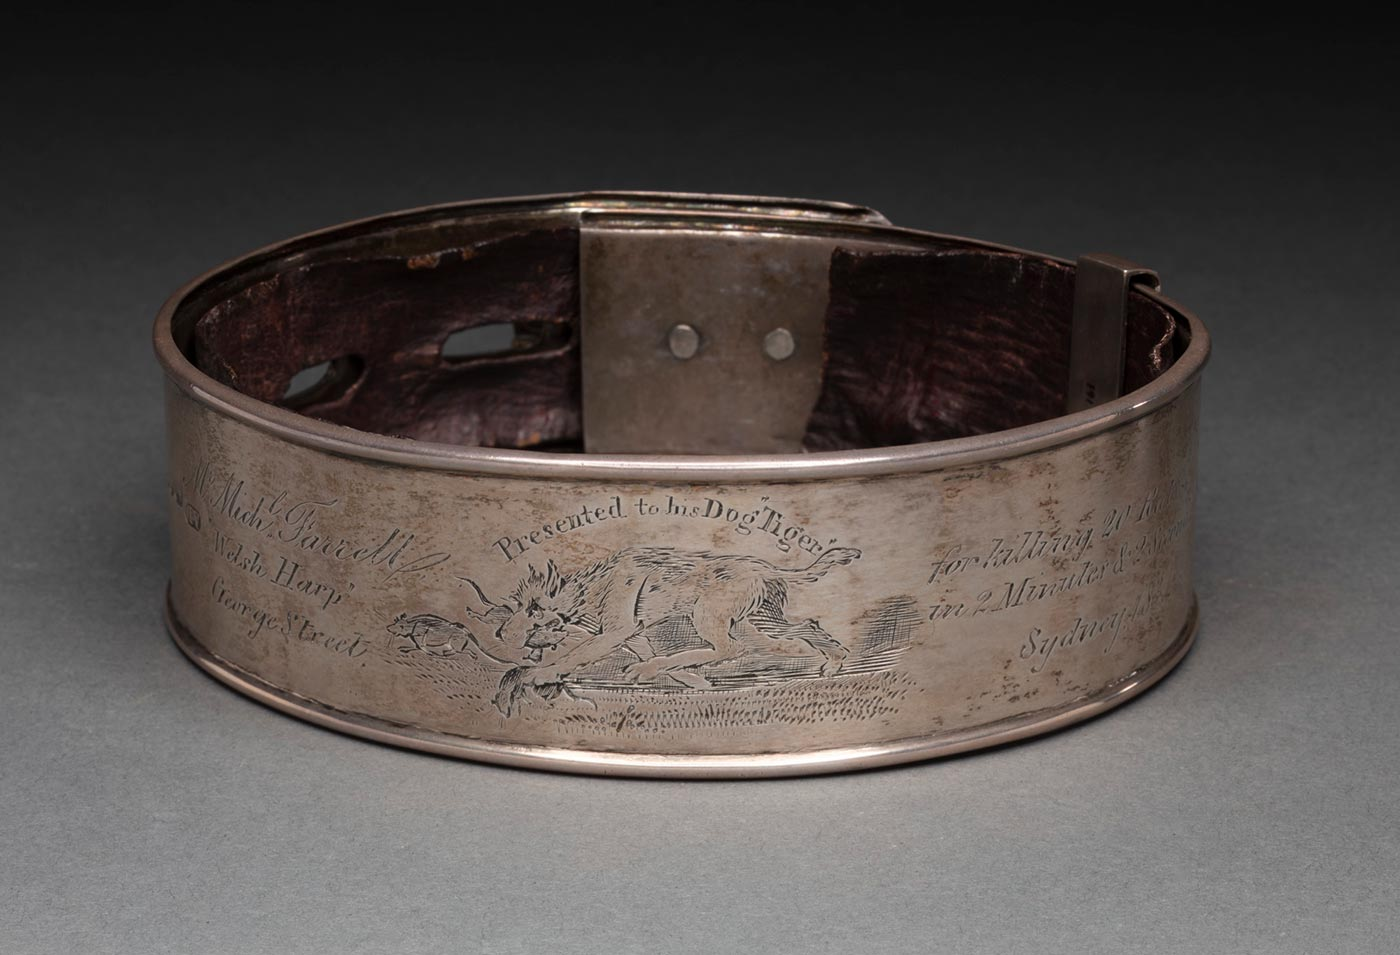 A sterling silver dog collar with a brass padlock and lined with dried brown leather. The collar is engraved with 'Mr. Michl. [sic] Farrell /